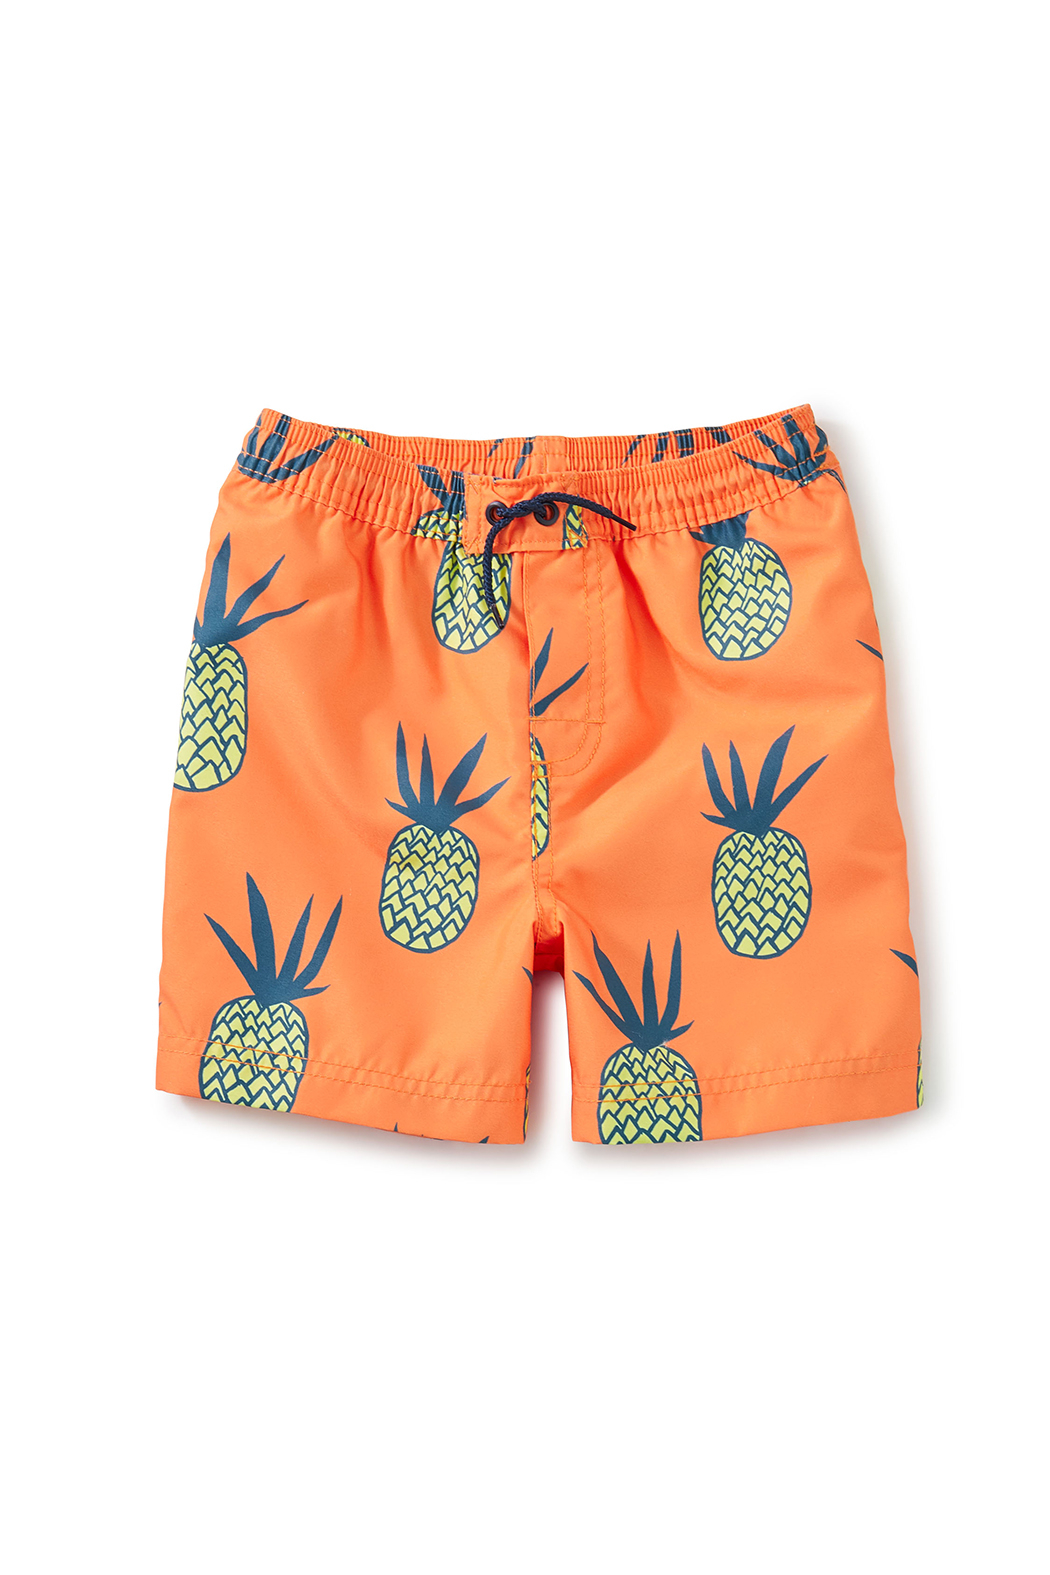 Tea Collection  Saved By The Beach Swim Trunks - Golden Pinas - Main Image